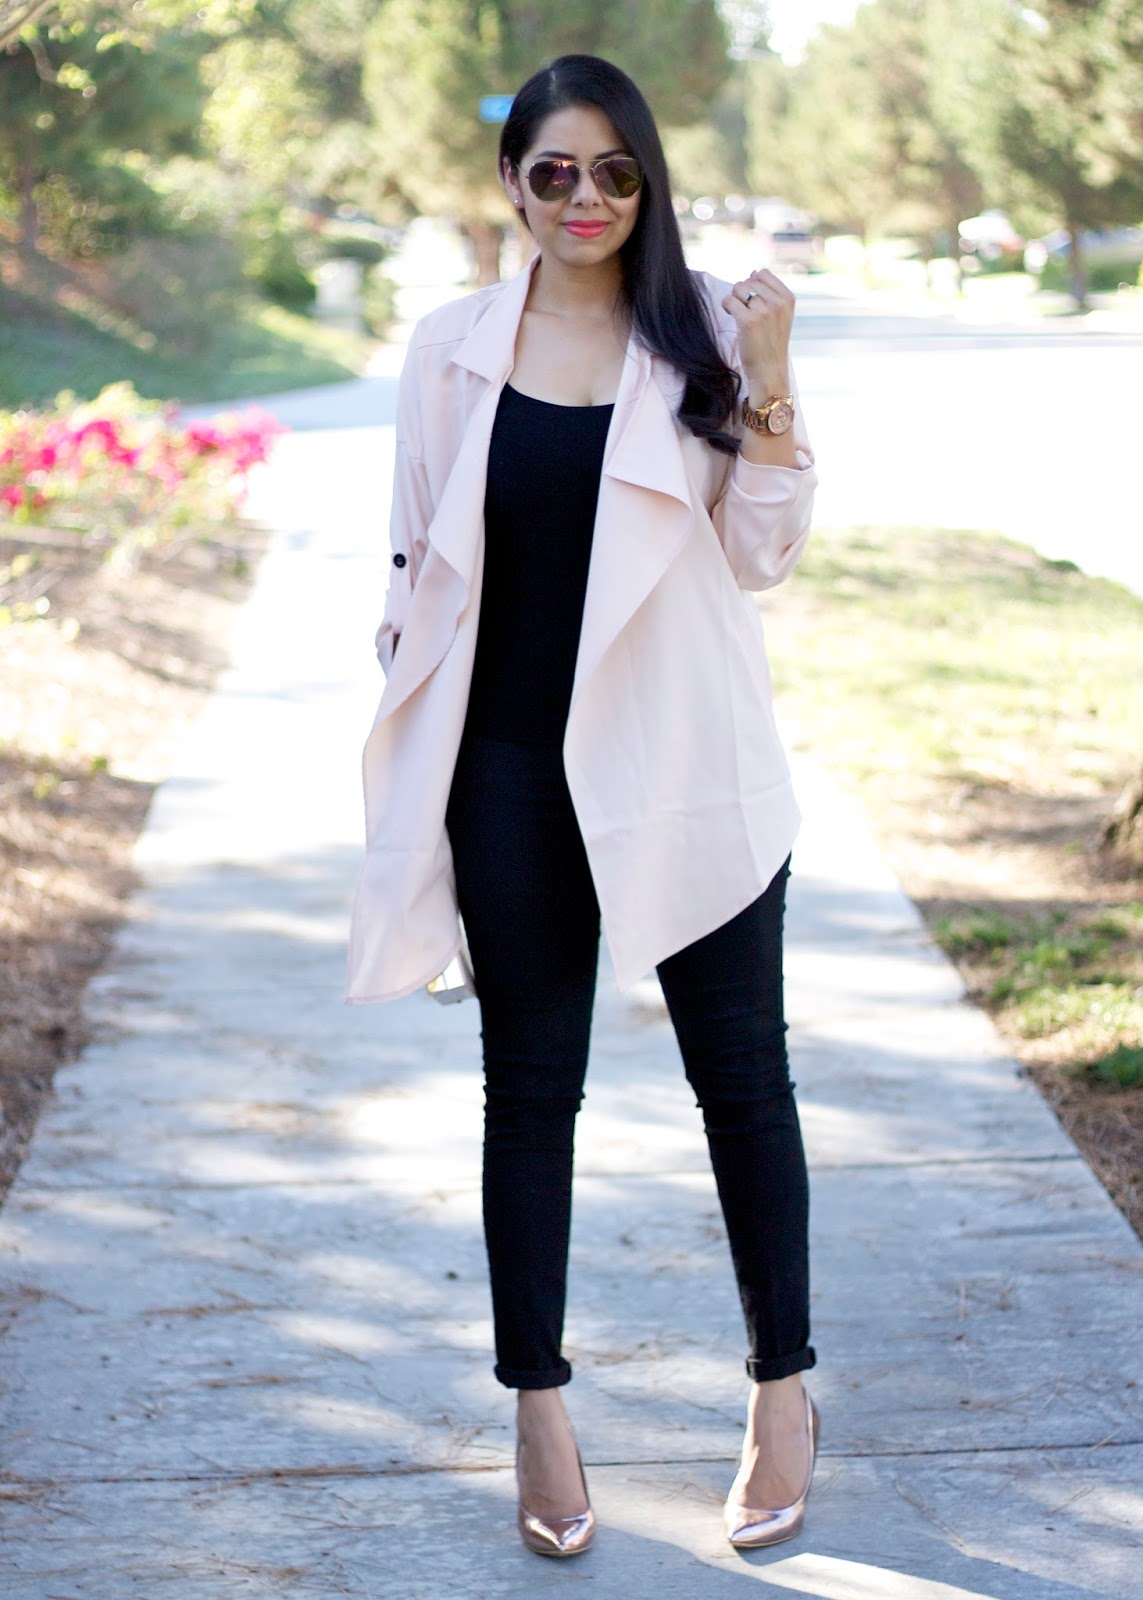 Mexican fashion blogger, socal fashion blogger, best of san diego bloggers, san diego fashion, how to dress up effortless chic